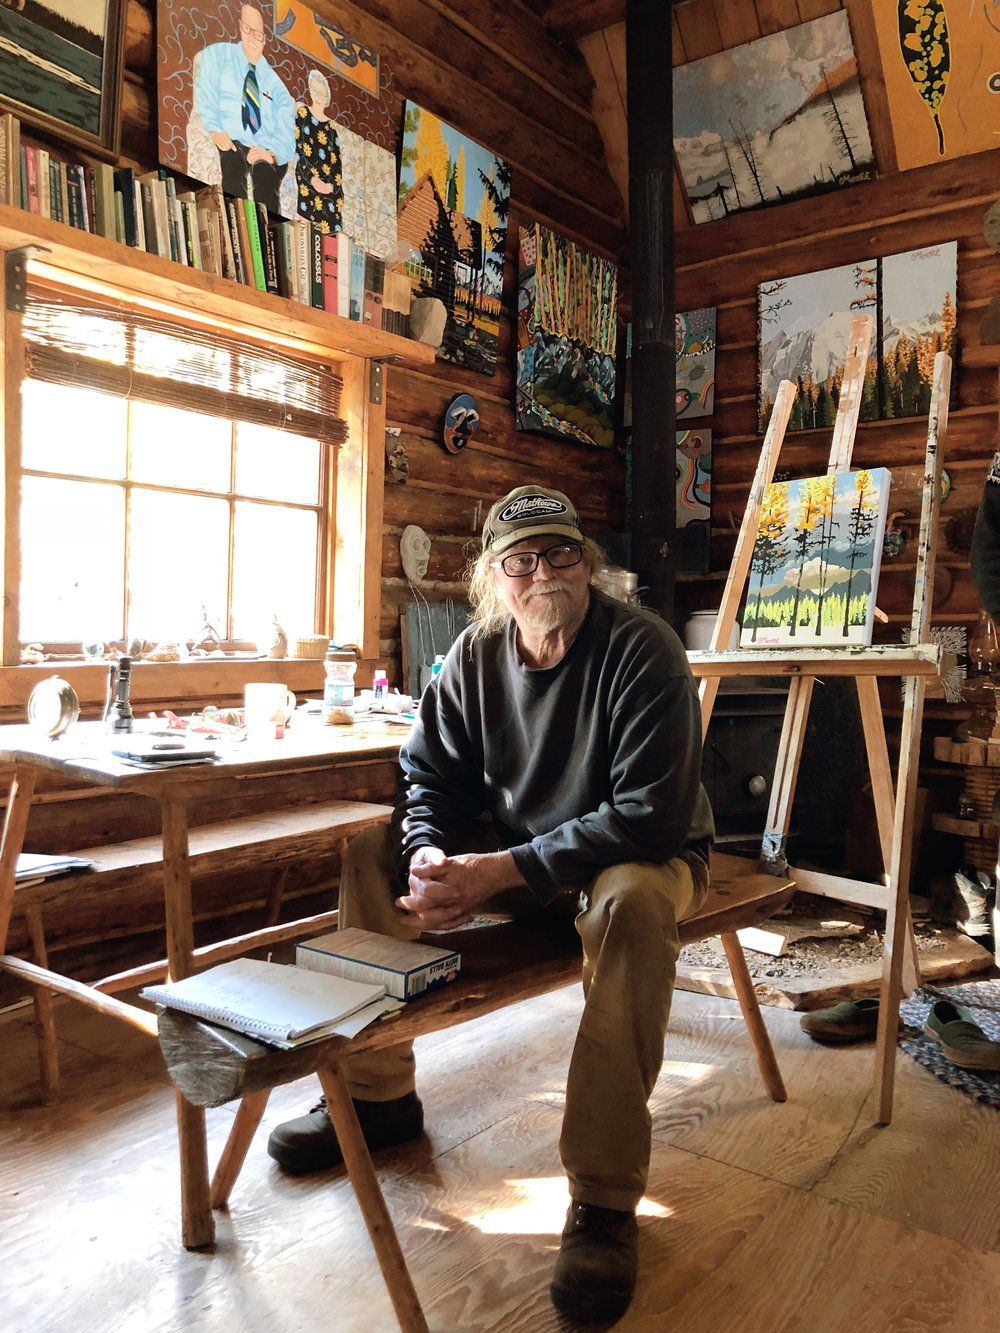 Peter Moore, Artist, sits comfortably at his easel.